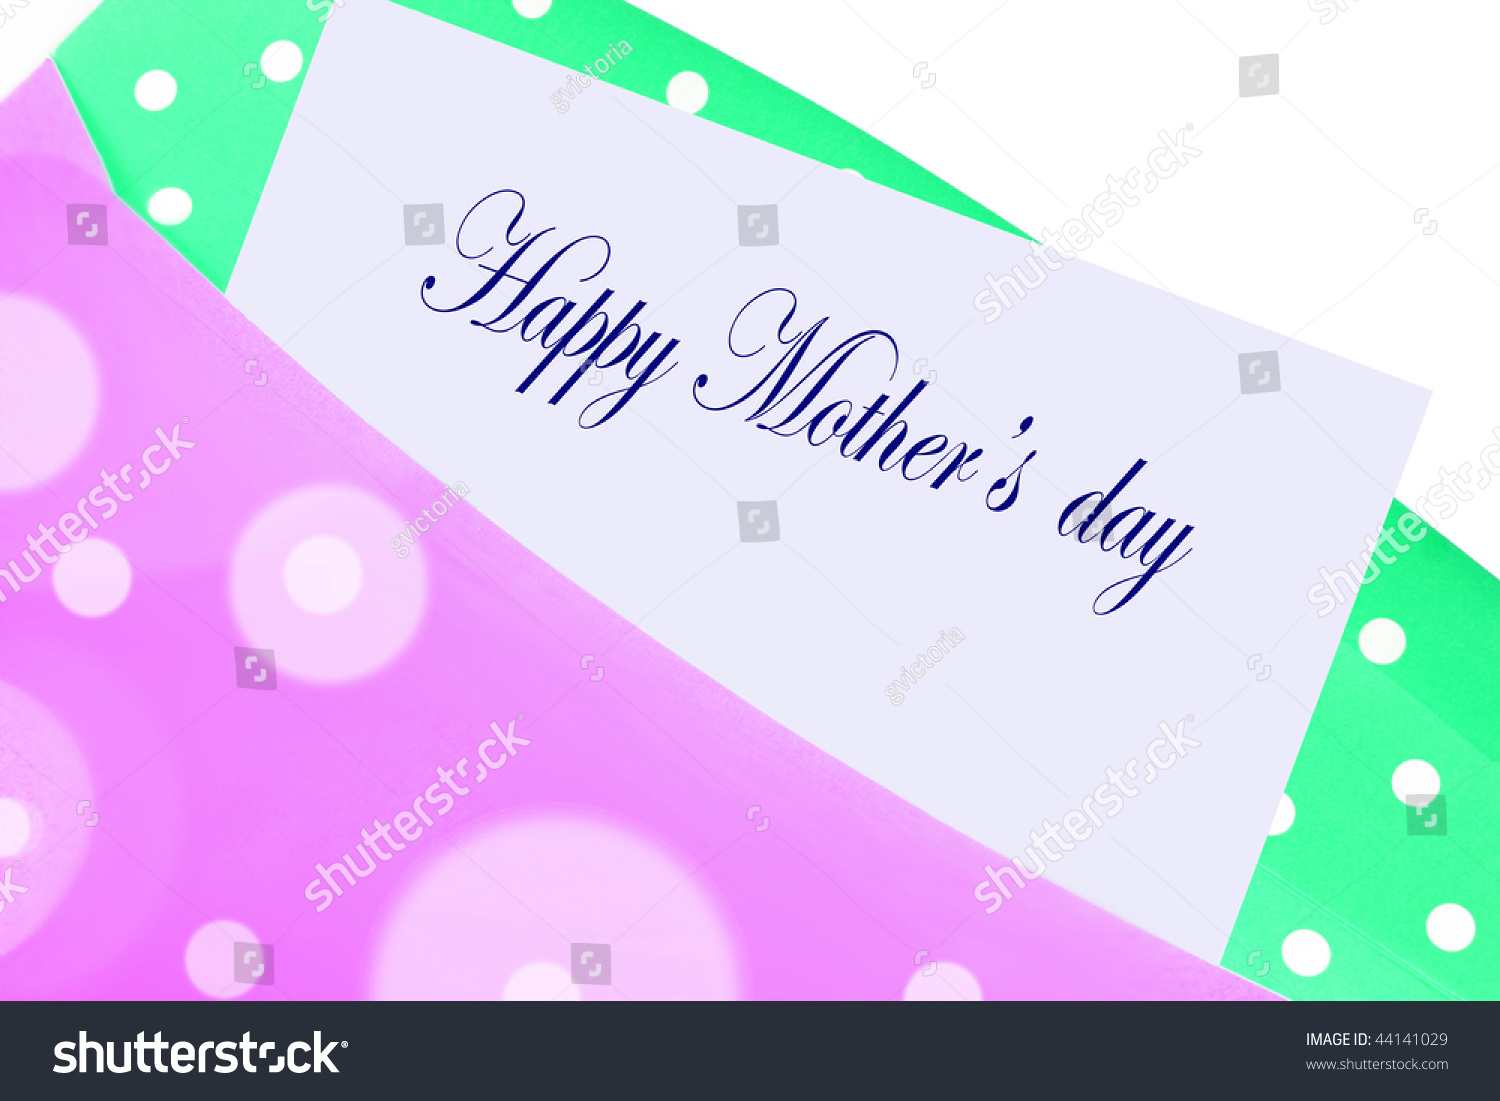 Happy mothers day greeting card note stock illustration 44141029 happy mothers day greeting card note or letter in pink and green polka dot envelope kristyandbryce Choice Image